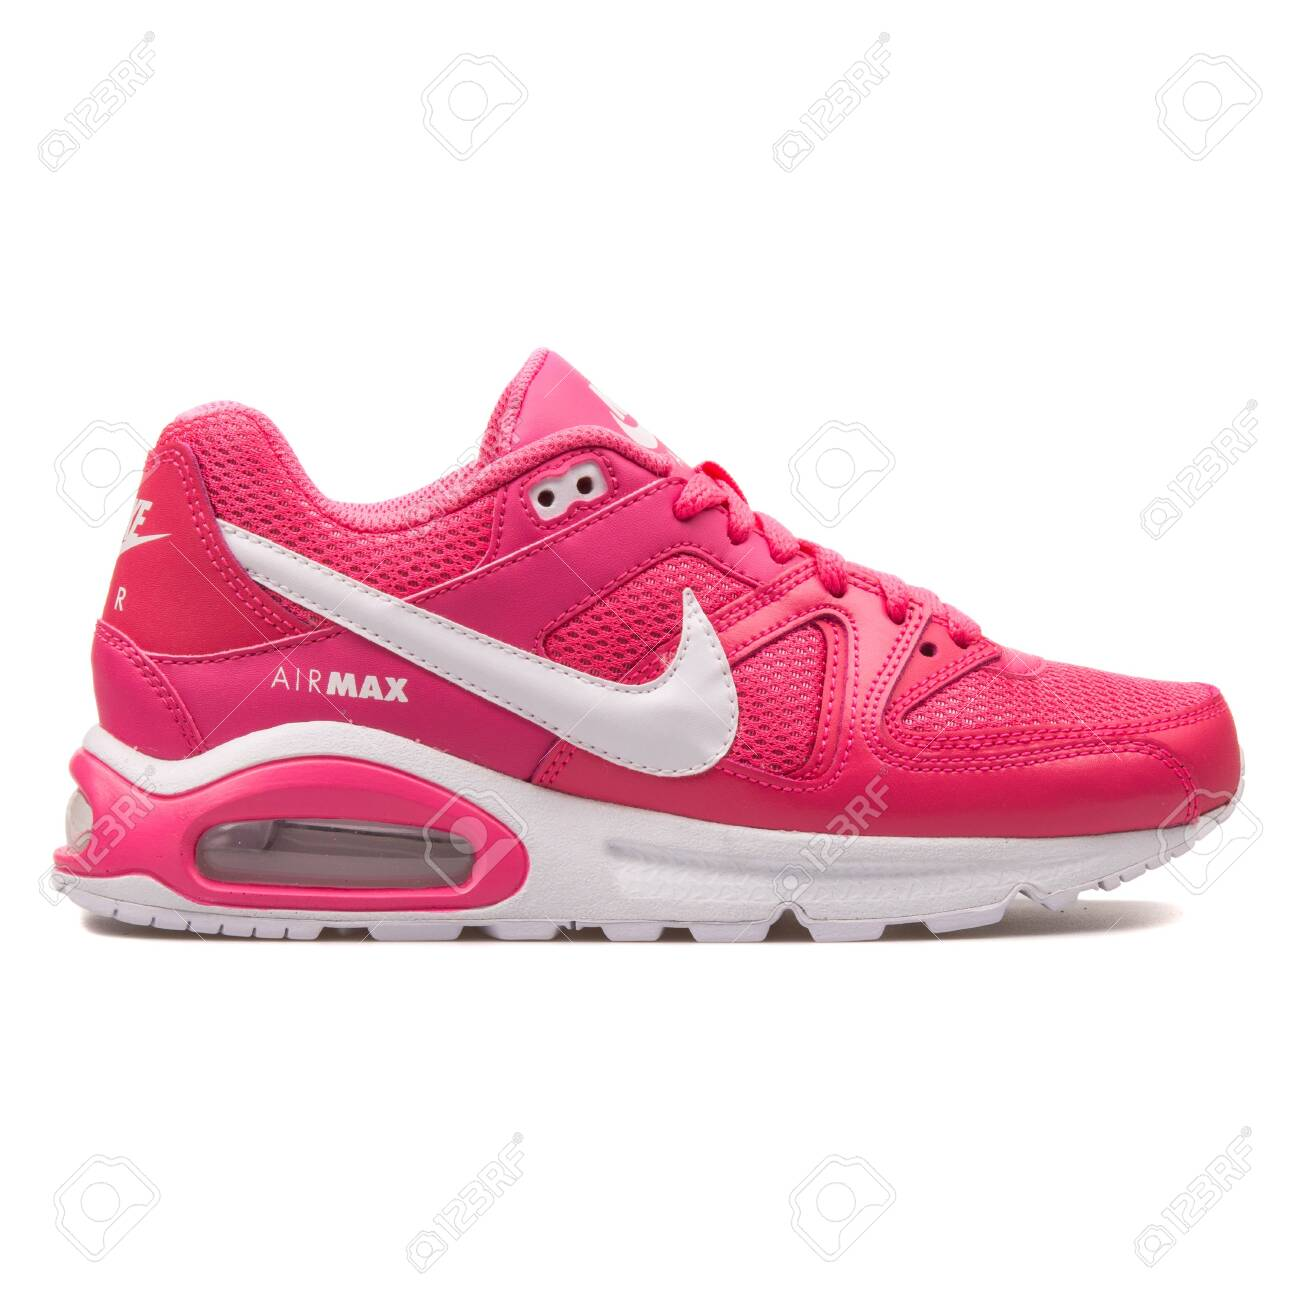 Nike Air Max Command Pink.. Stock Photo